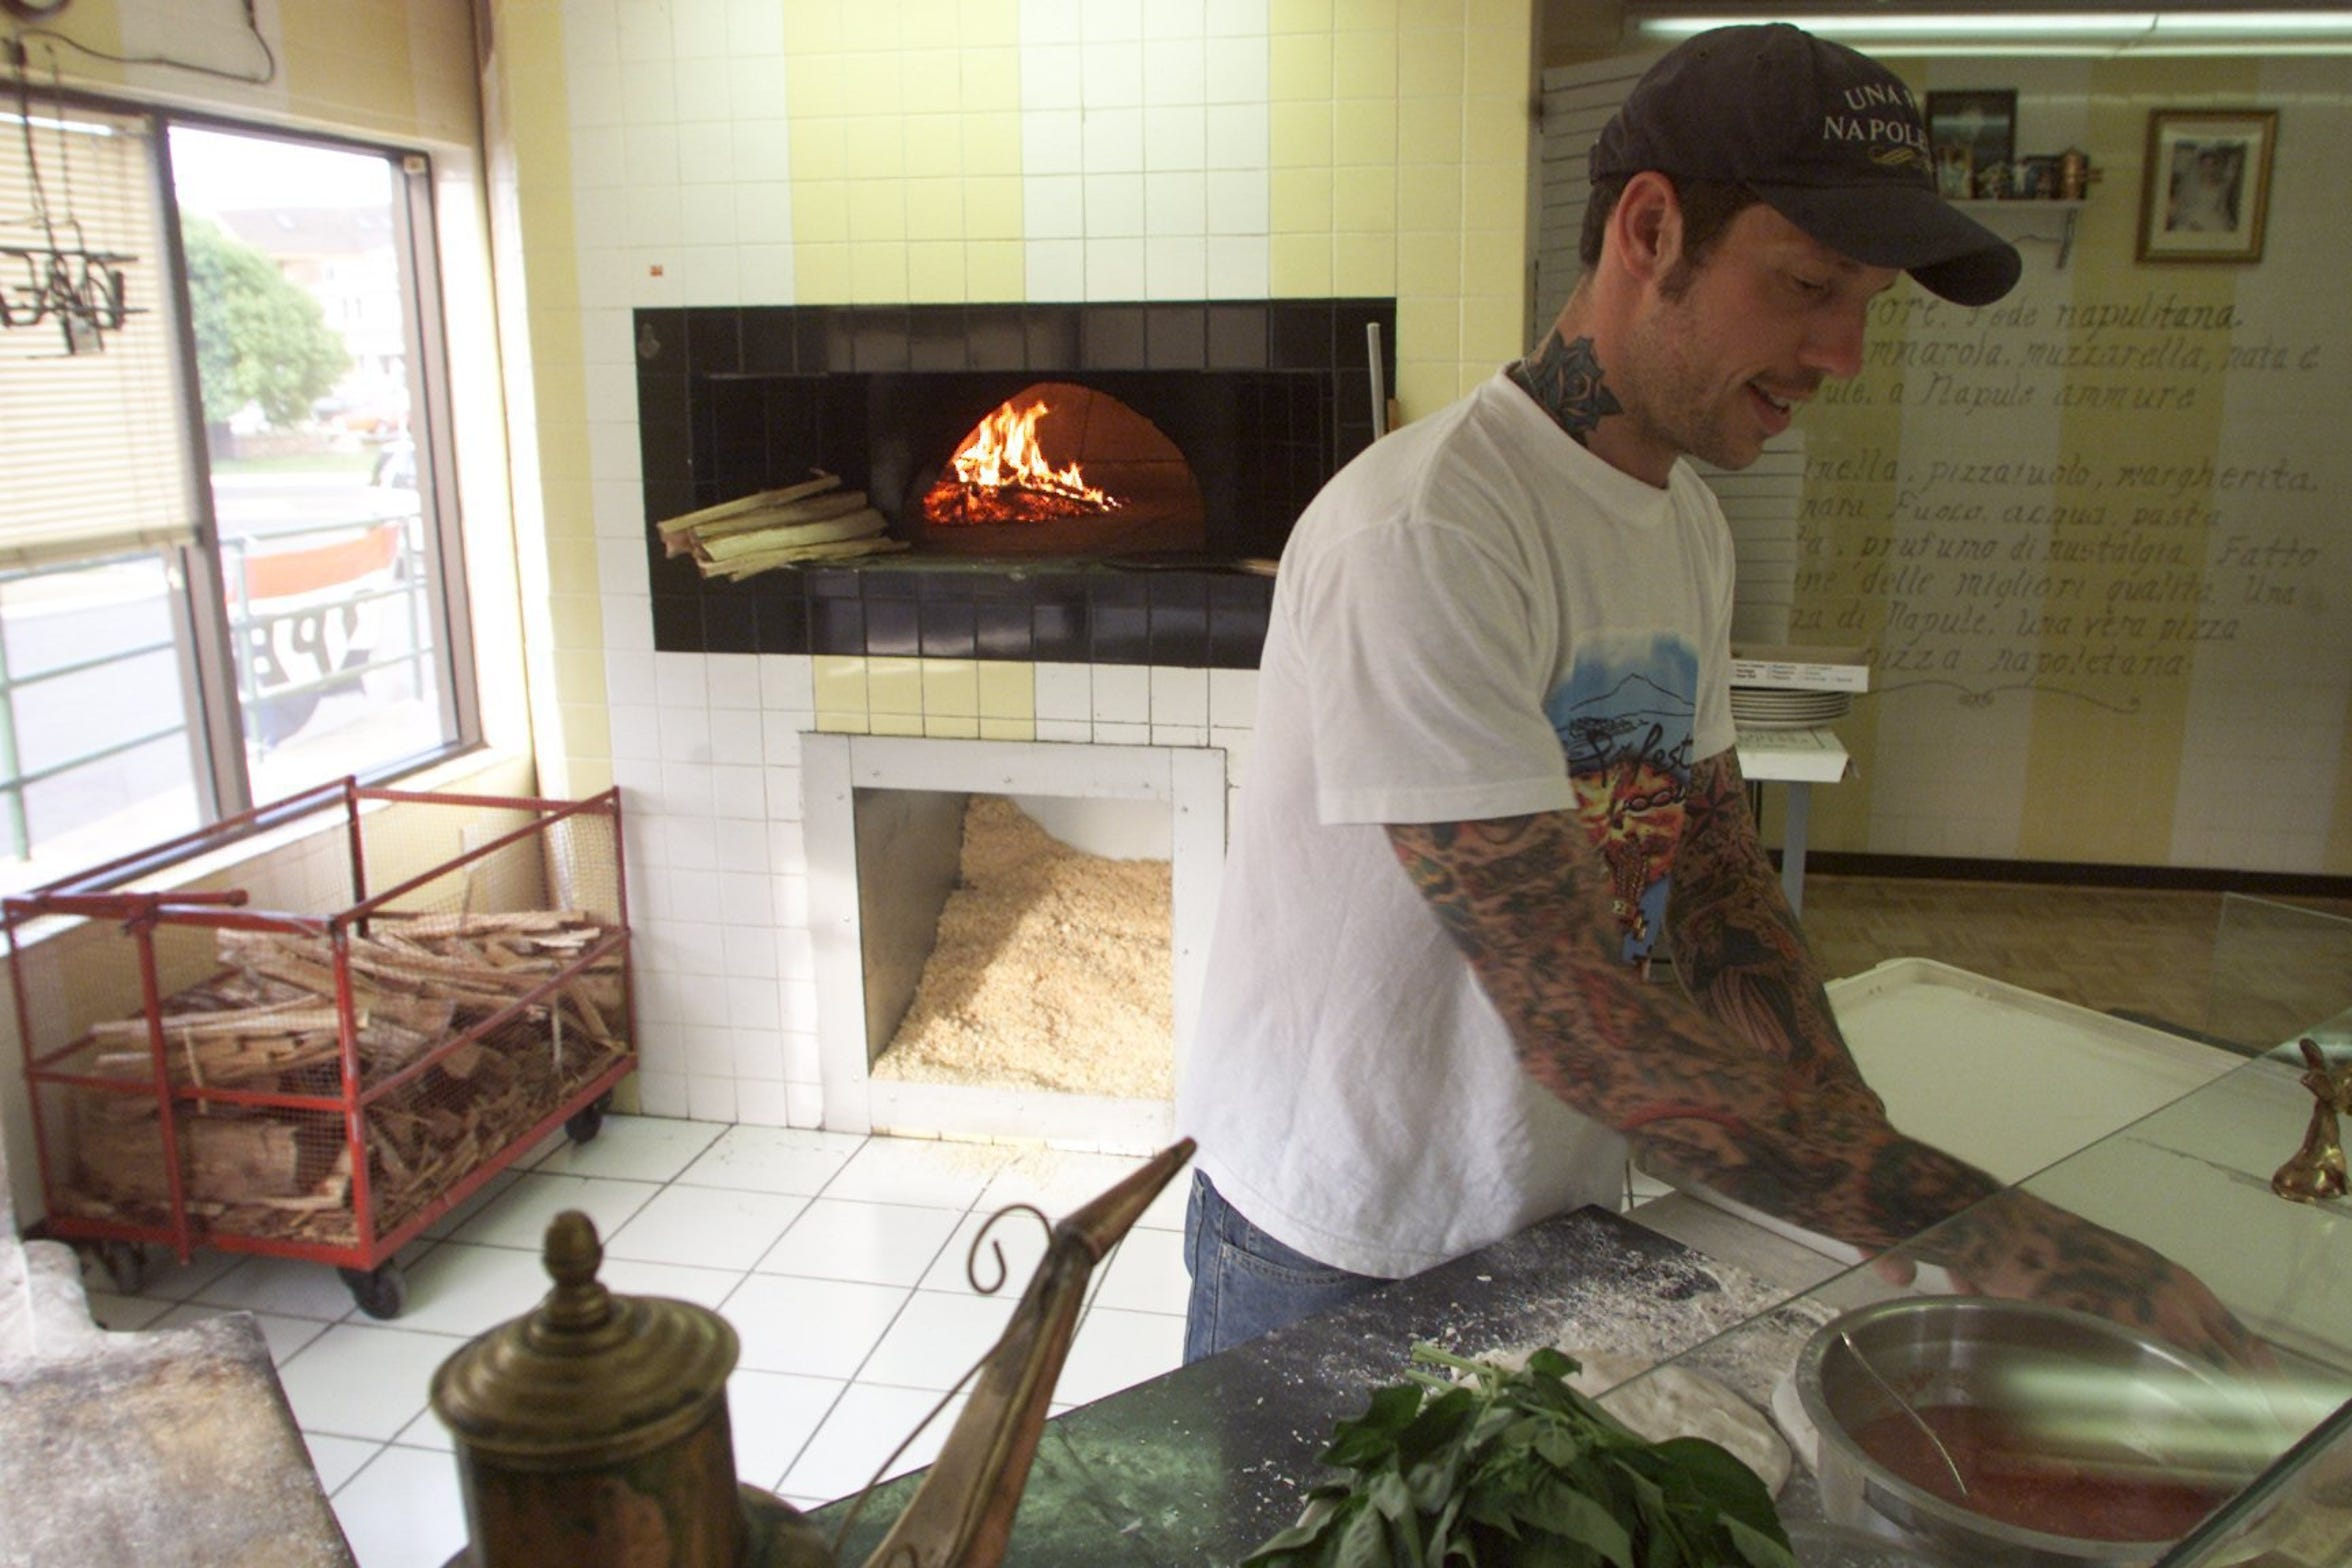 Anthony Mangieri in his first Una Pizza Napoletana restaurant in Point Pleasant Beach in 2003.